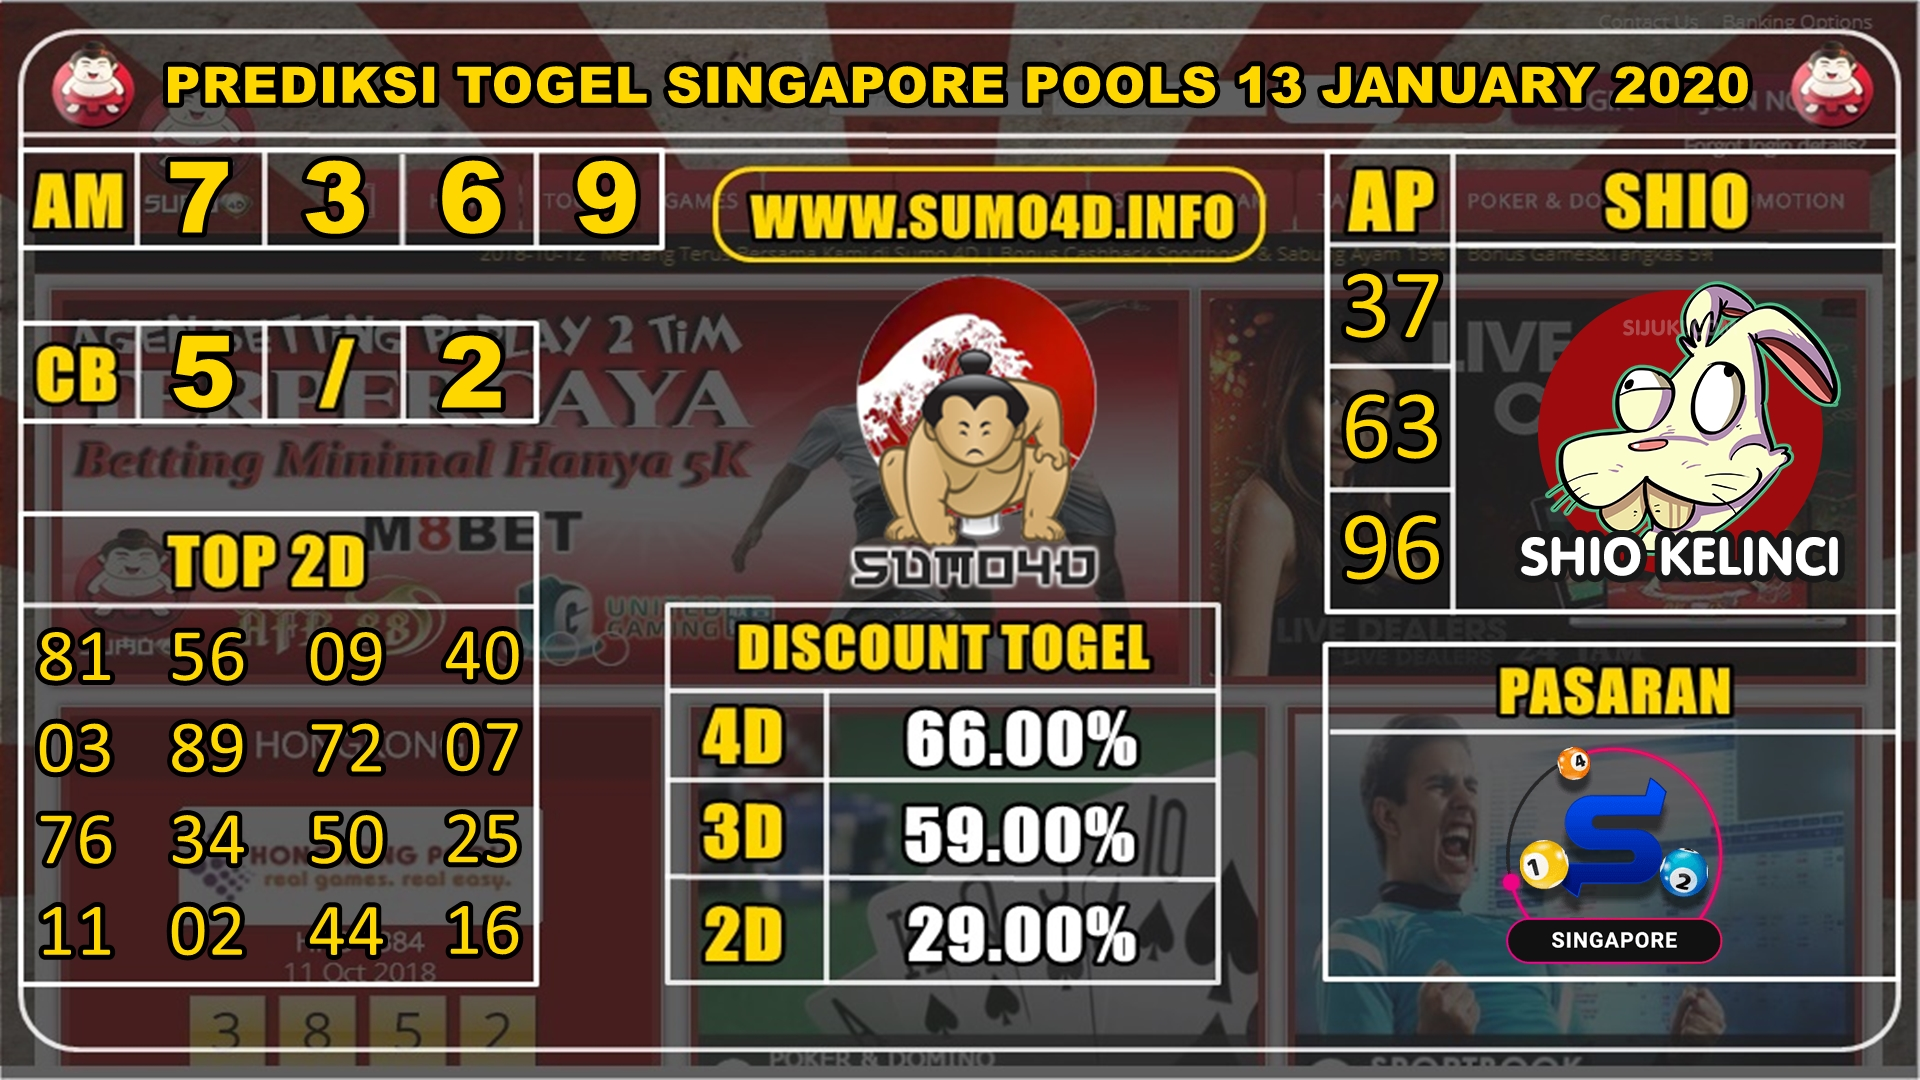 PREDIKSI TOGEL SINGAPORE POOLS 13 JANUARY 2020